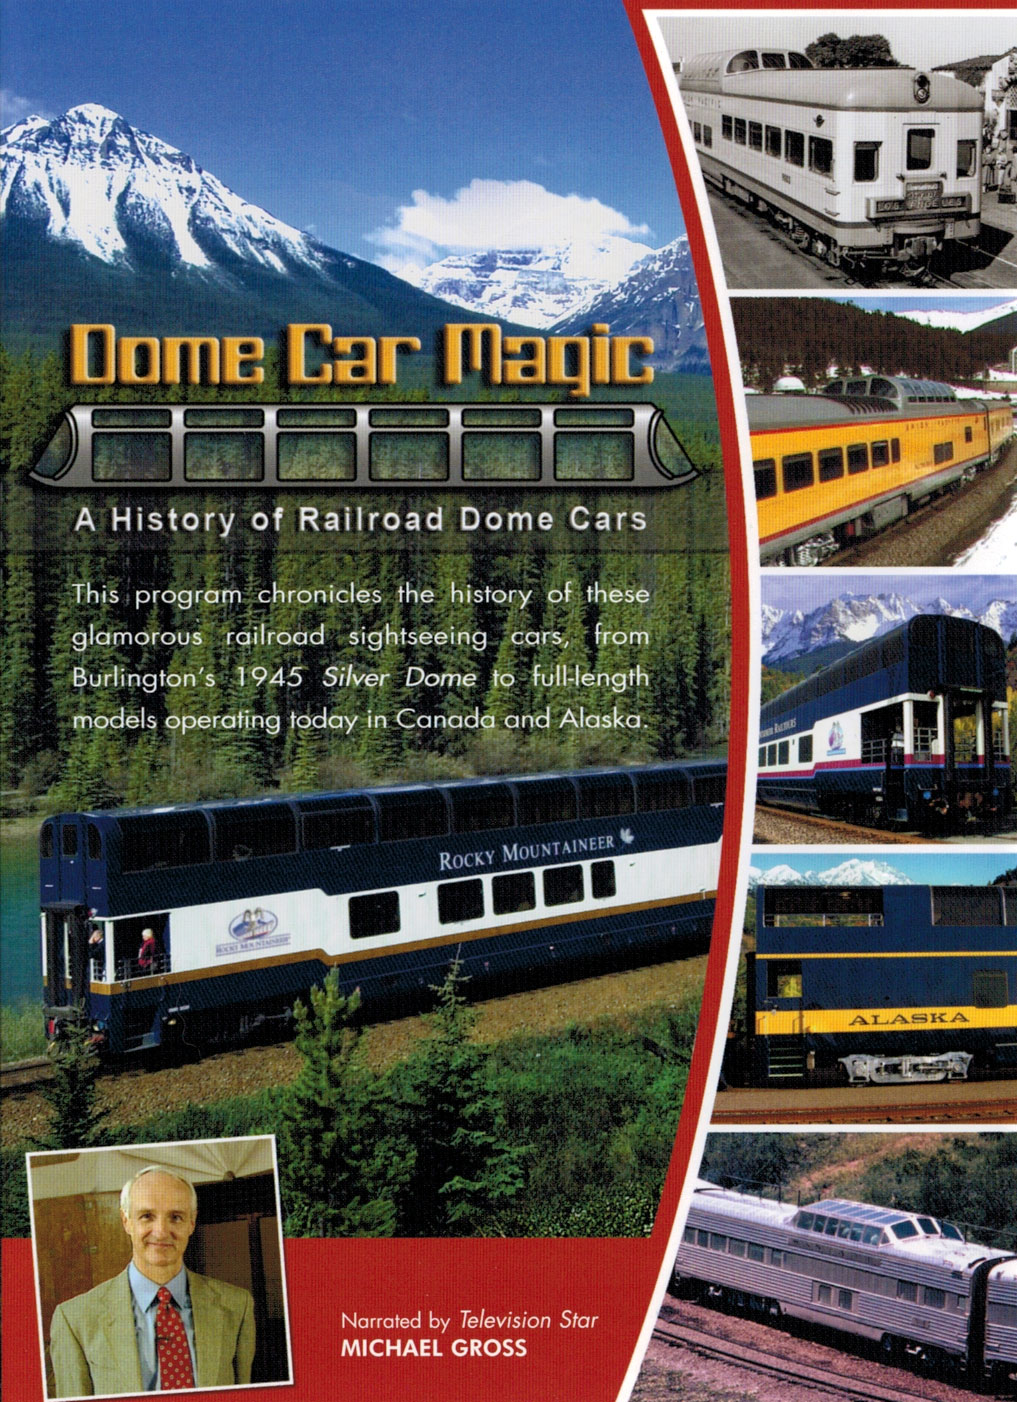 Dome Car Magic - A History of Railroad Dome Cars on DVD Train Video Kalmbach Publishing RK-DOMECAR 823995200596